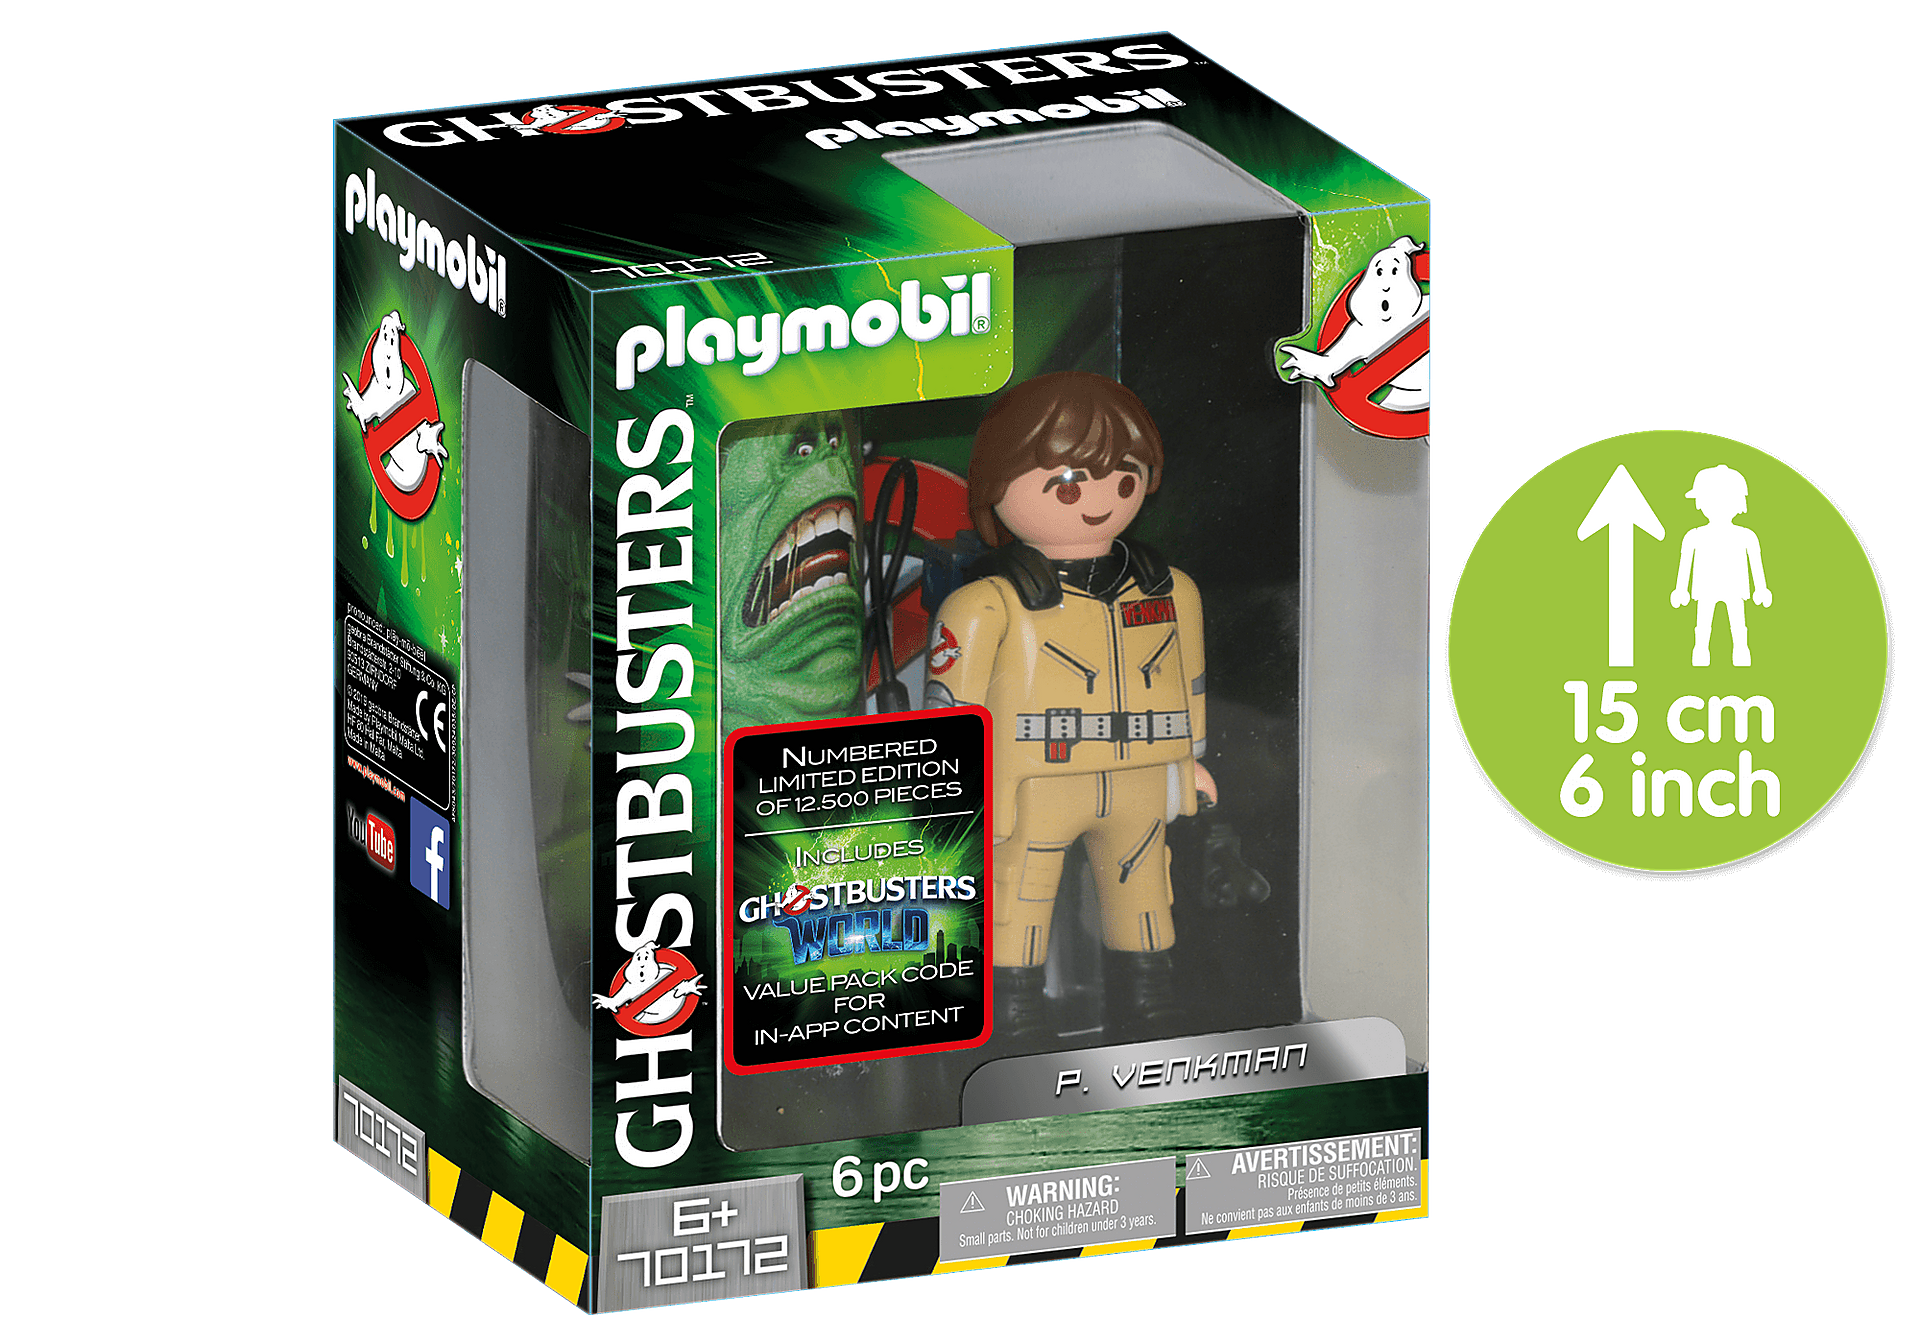 http://media.playmobil.com/i/playmobil/70172_product_detail/Ghostbusters™ Collection Figure P. Venkman